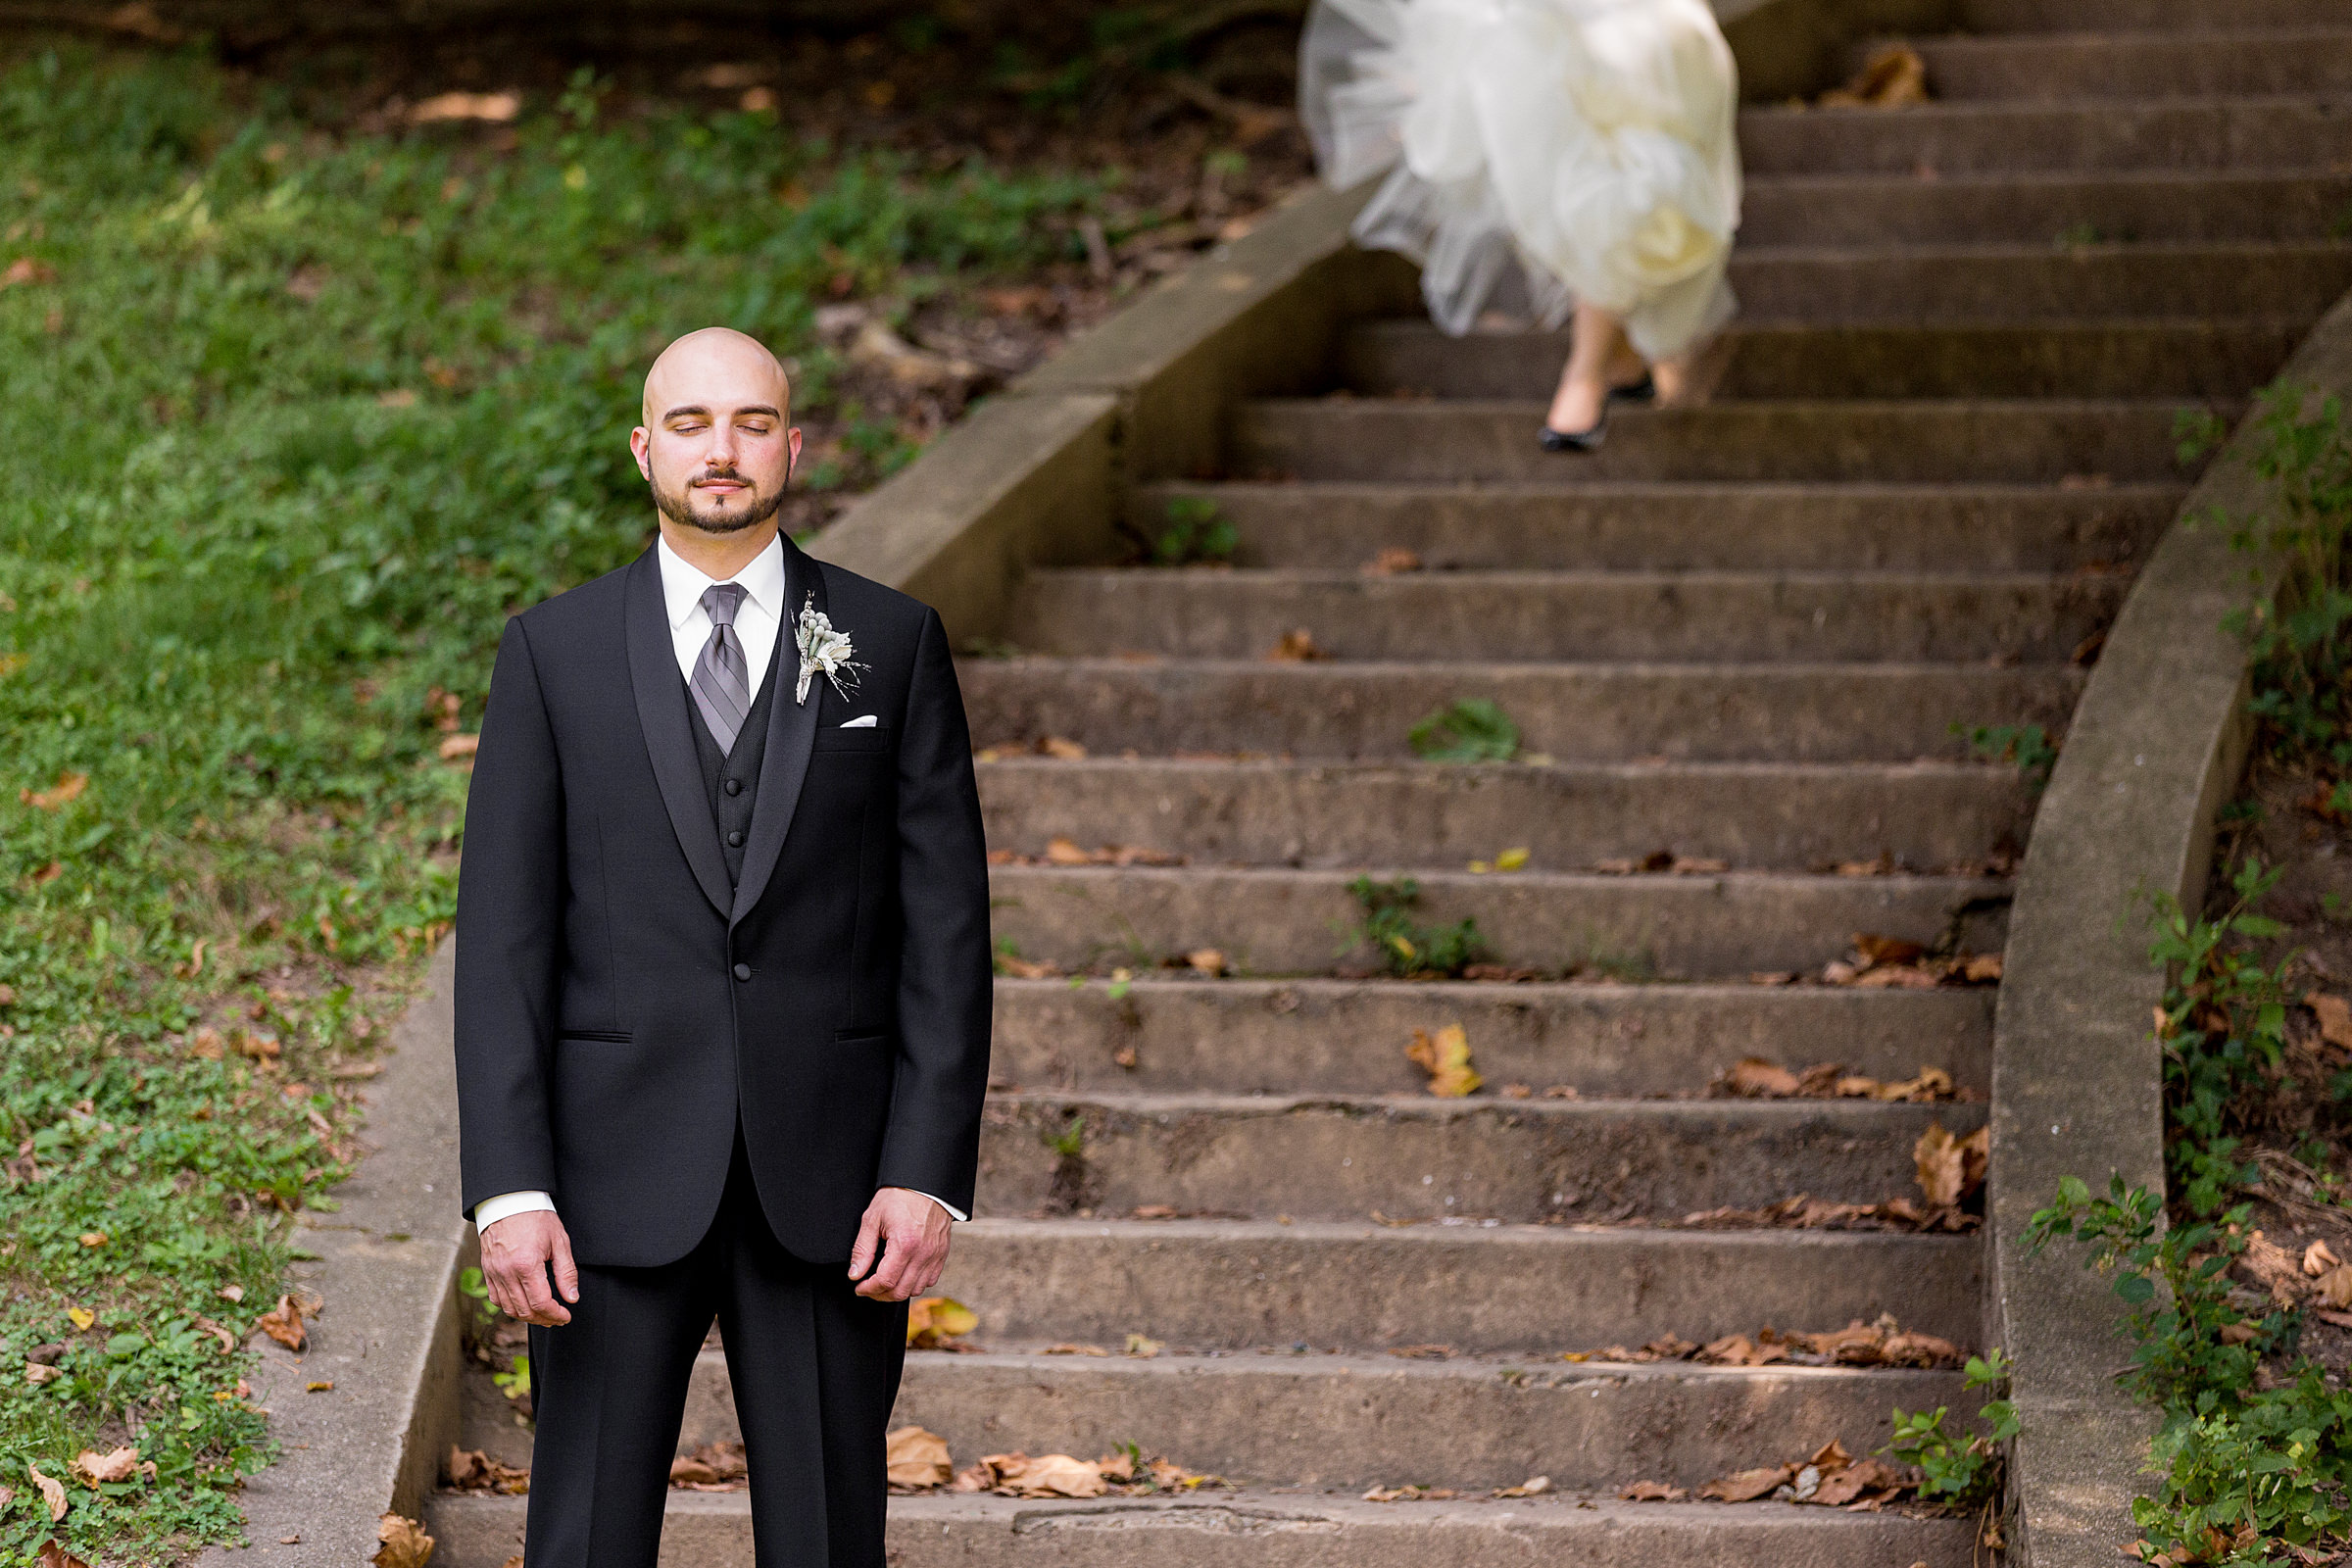 Groom waits for bride at first look - photo by Procopio Photography